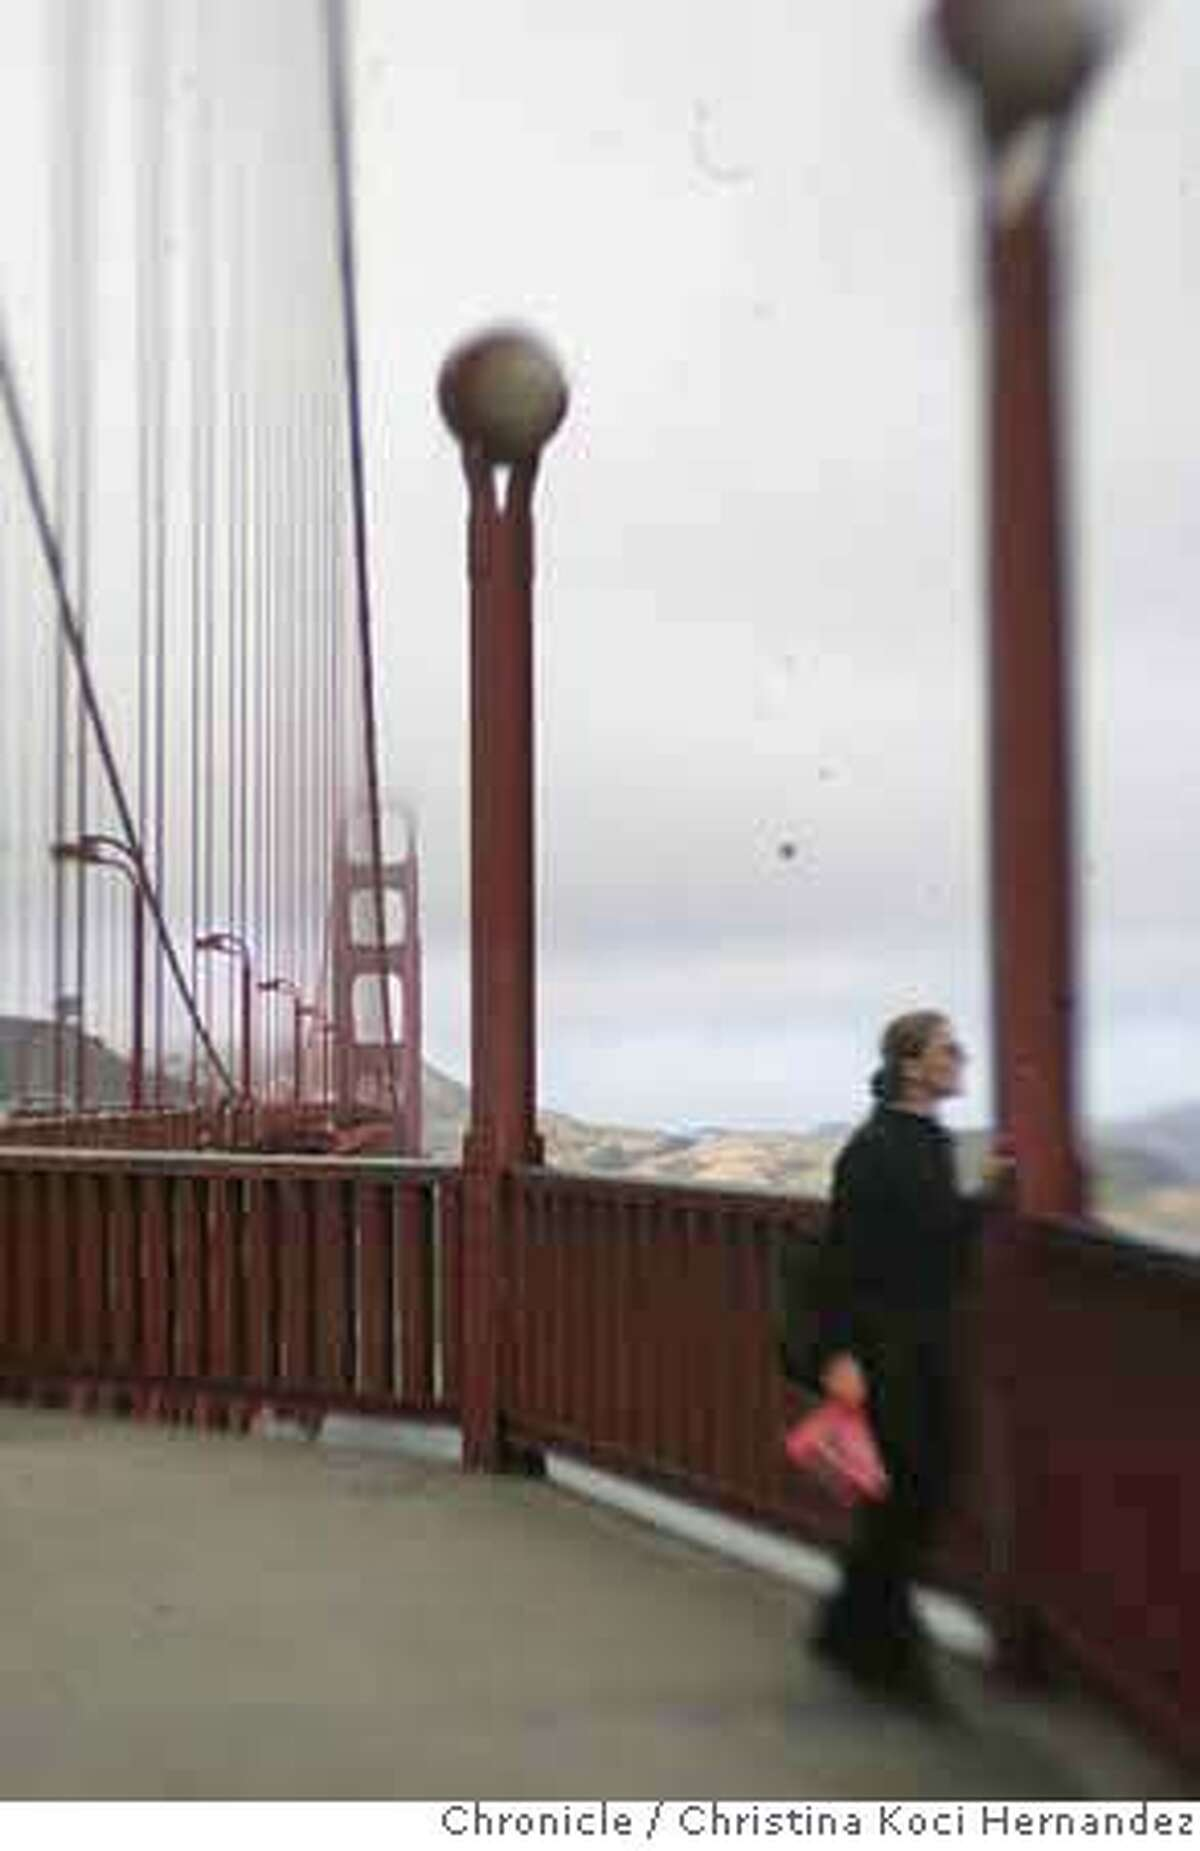 CHRISTINA KOCI HERNANDEZ/CHRONICLE Photos of the Golden gate Bridge. Story on GG Bridge suicides for story,